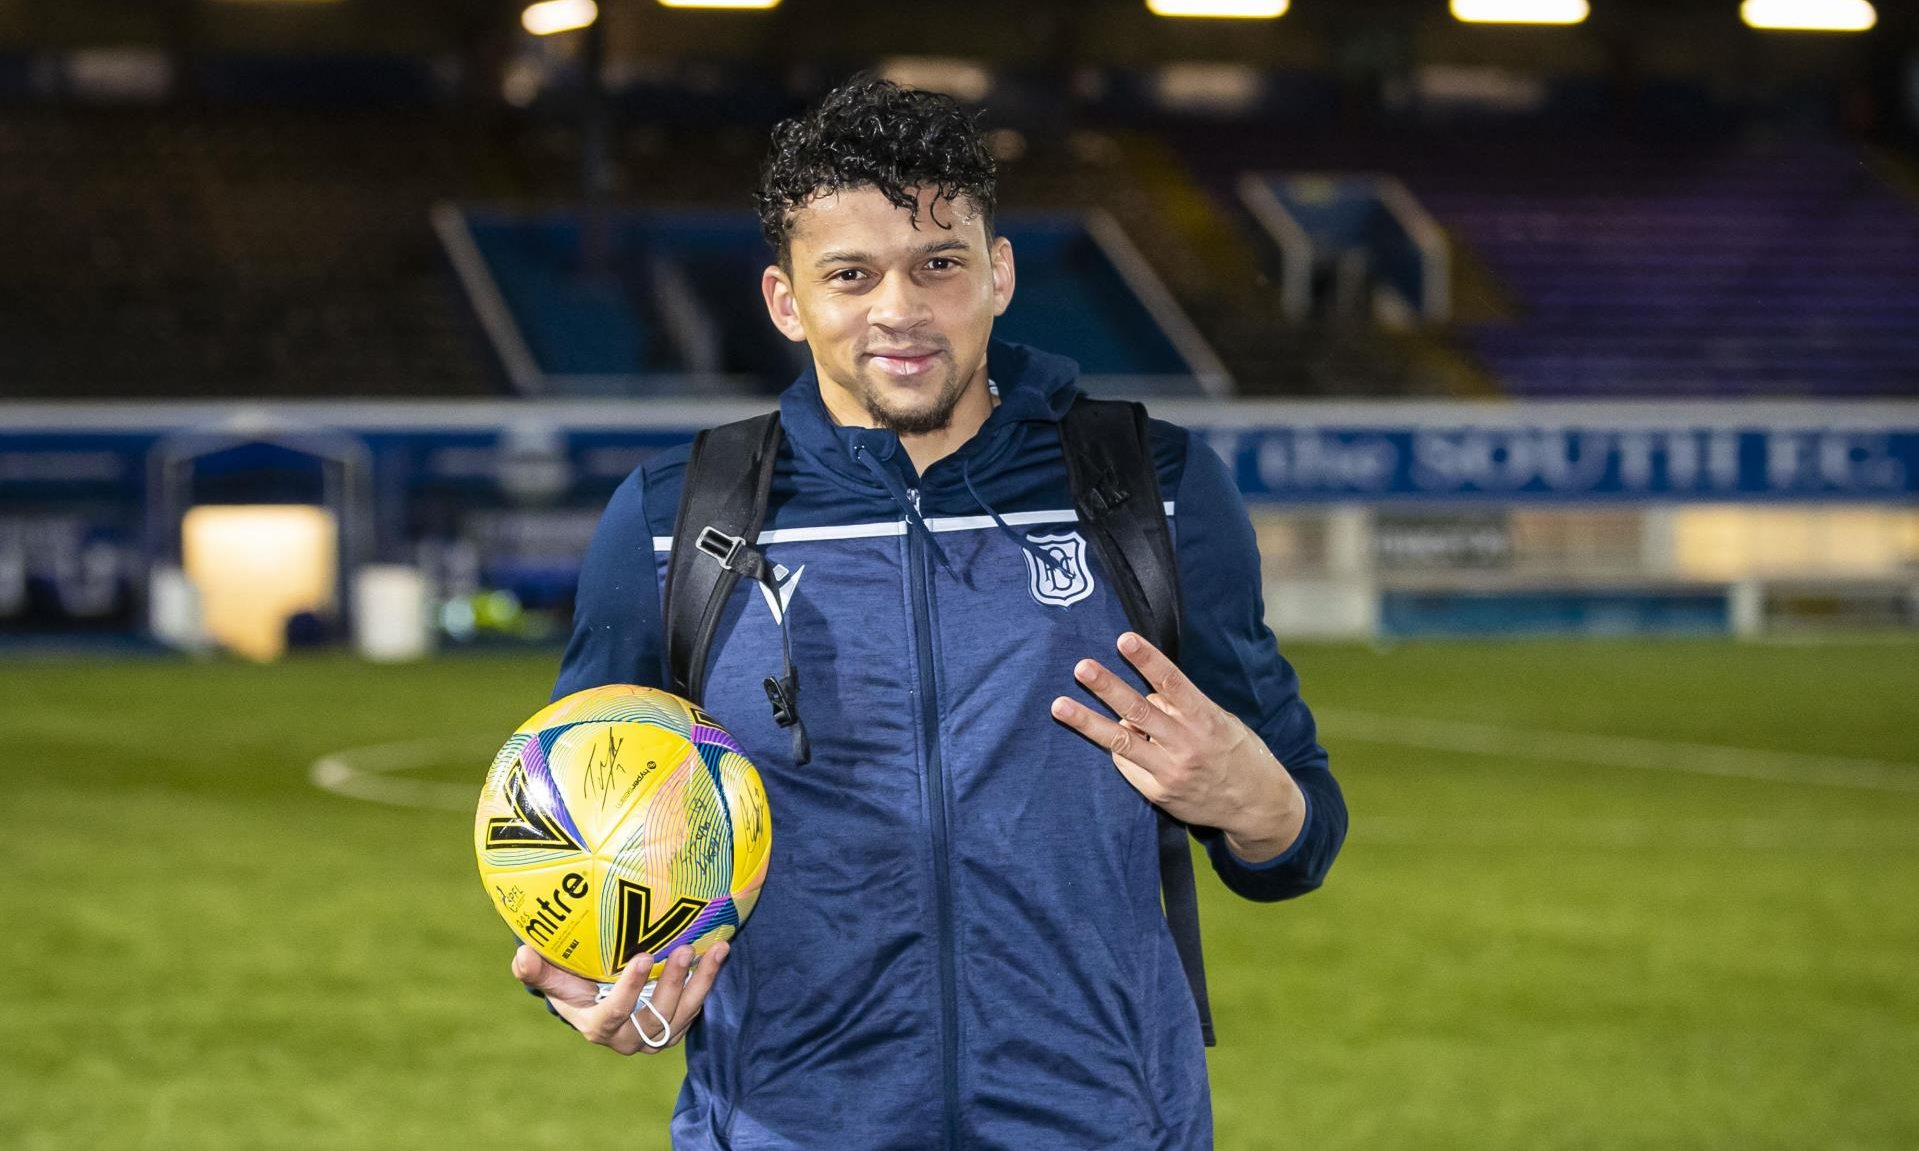 Dundee striker Osman Sow at full-time after hat-trick.